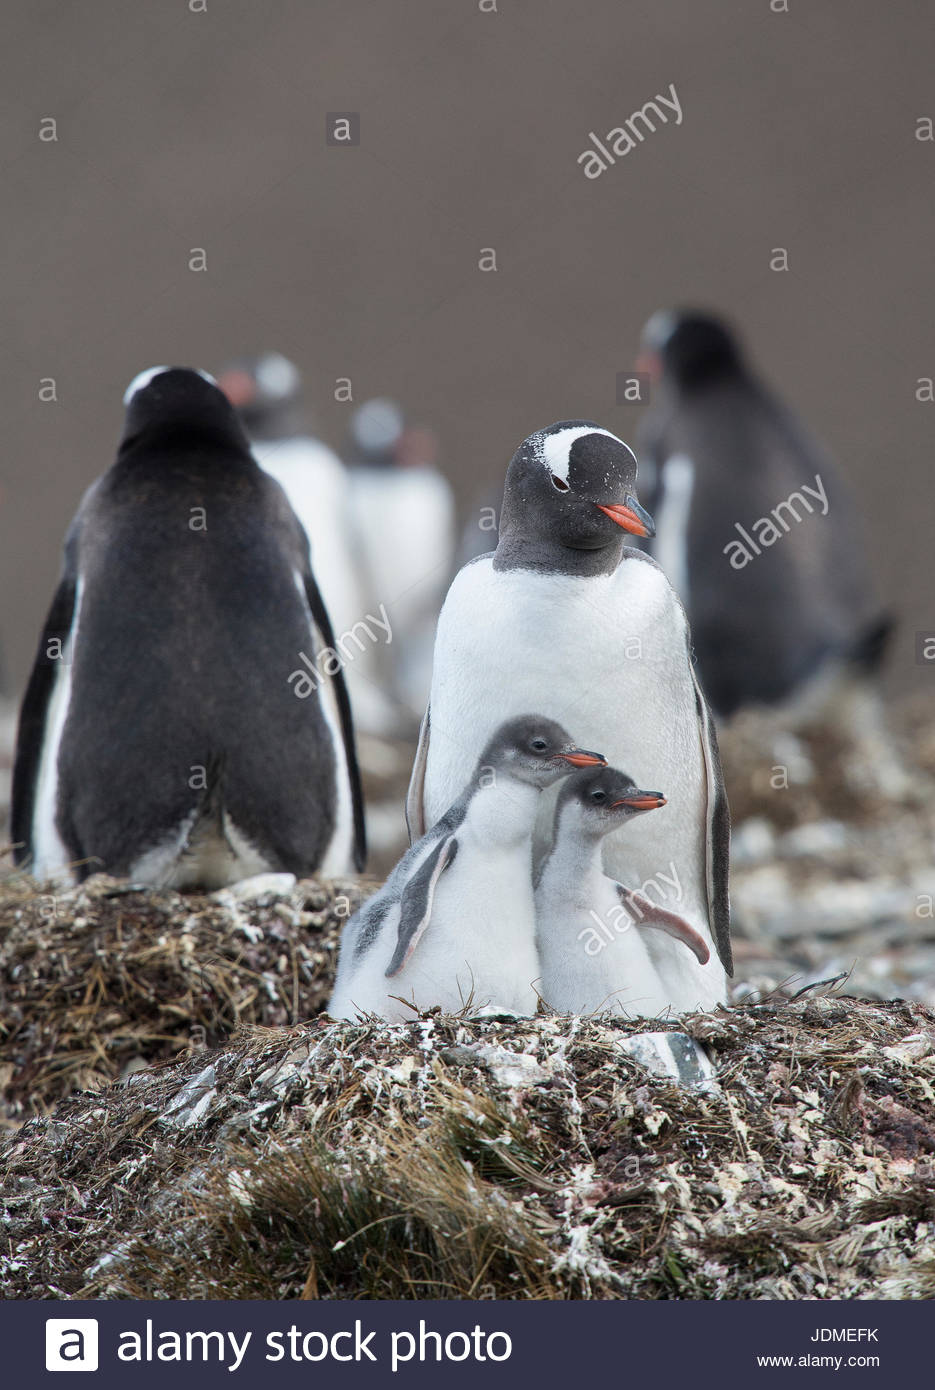 Gentoo penguins, Pygoscelis papua, rear their penguin chicks at a colony. - Stock Image